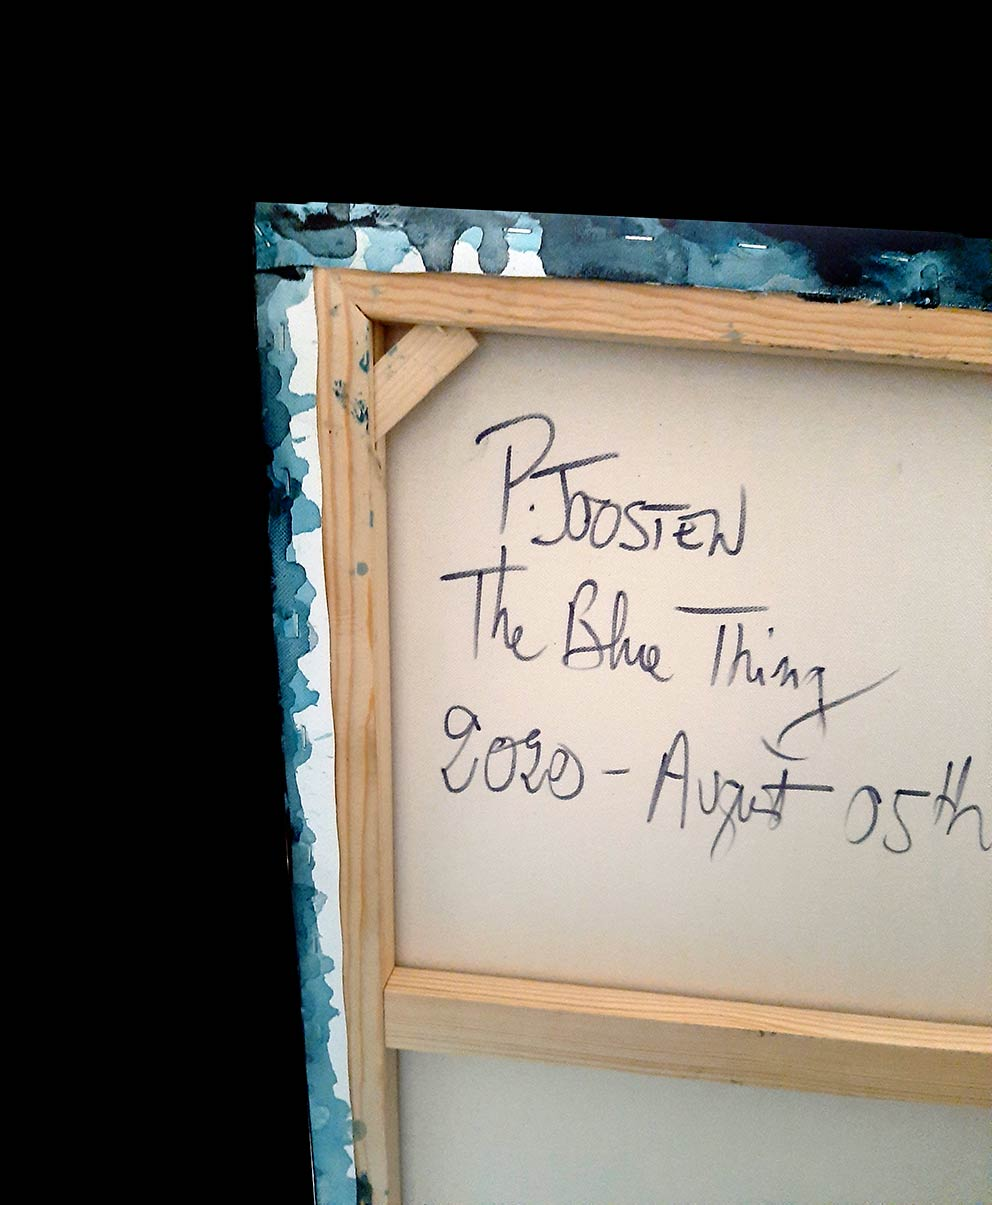 The-Blue-Thing-Patrick-Joosten-2020-August-05th-Back-signature